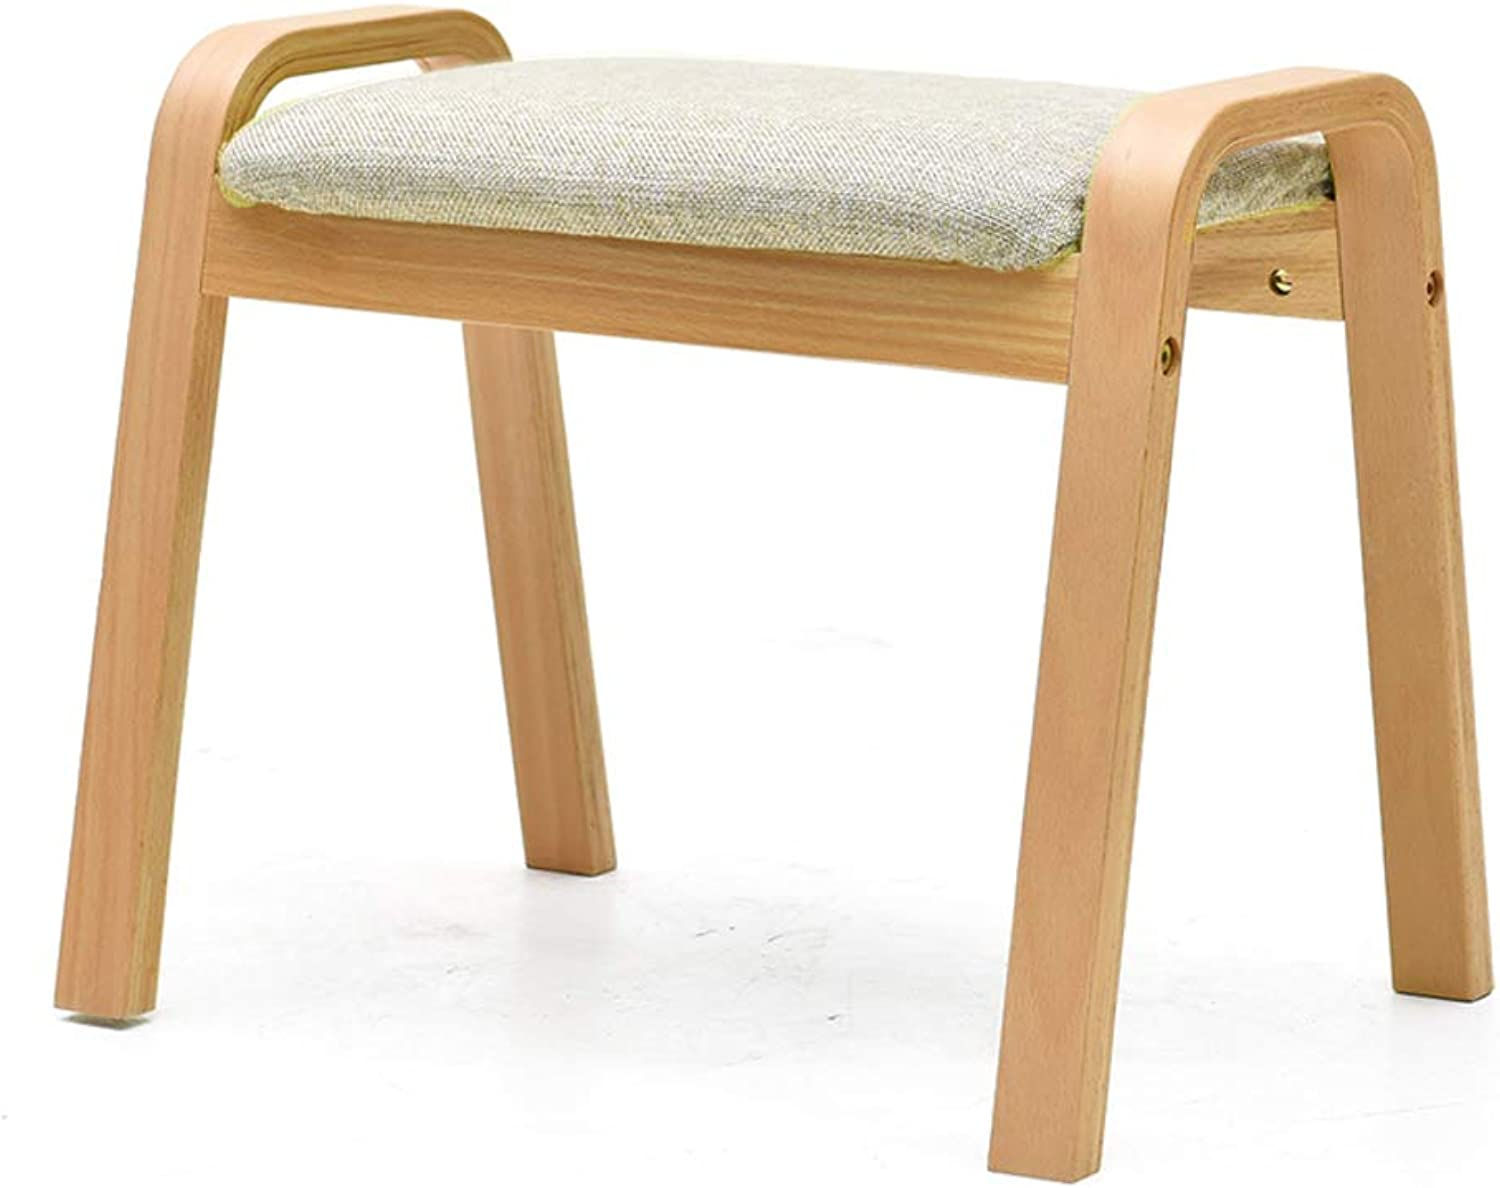 Wood Change shoes Stool,Wooden Footstool Easy Assembly for Foot Rest Thick Makeup Dressing Stool for Bedroom Living Room Kitchen-B 44x53x36cm(17x21x14in)